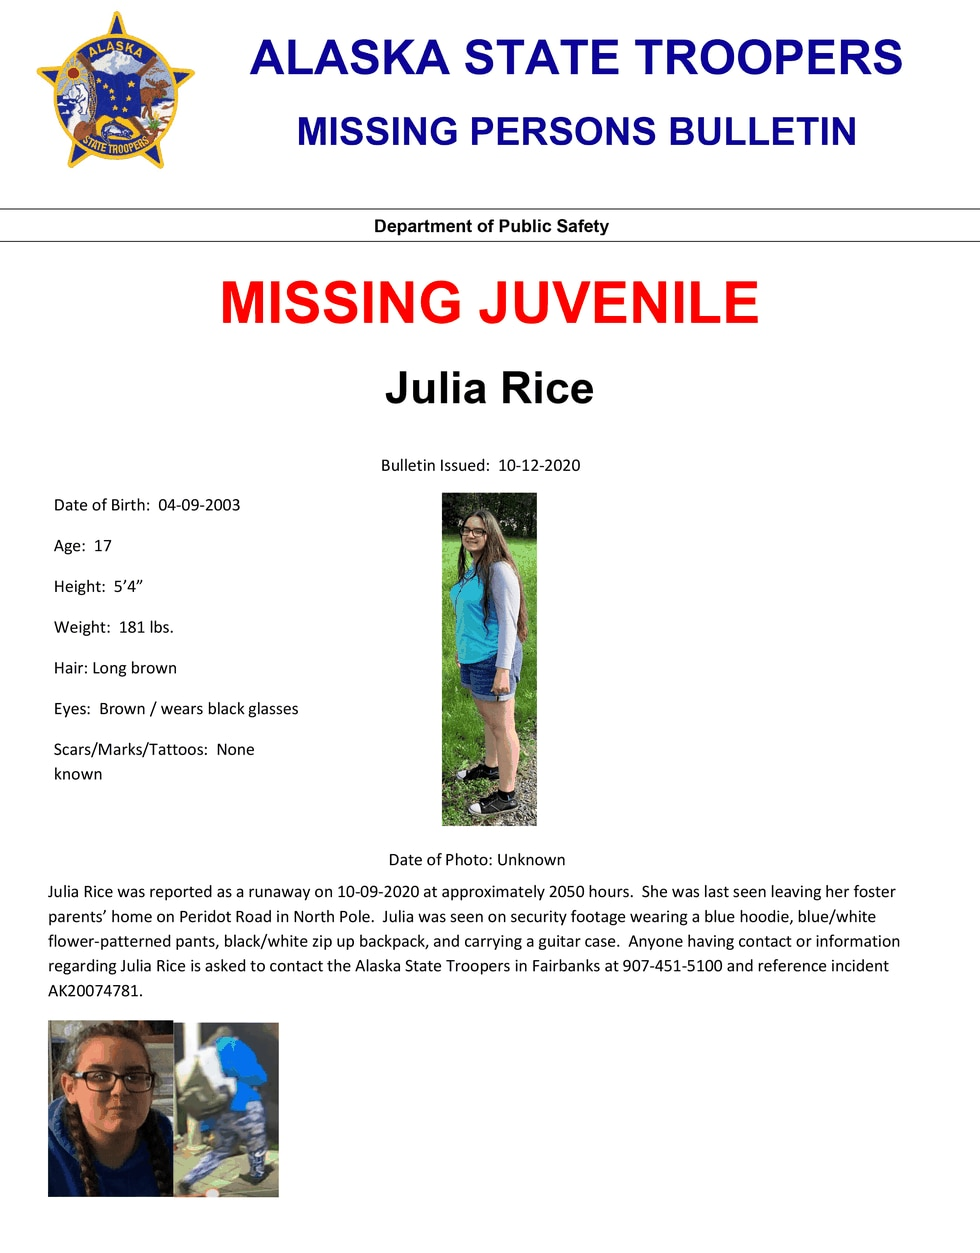 Julia Rice was reported as a runaway on 10-09-2020 at approximately 2050 hours. She was last...